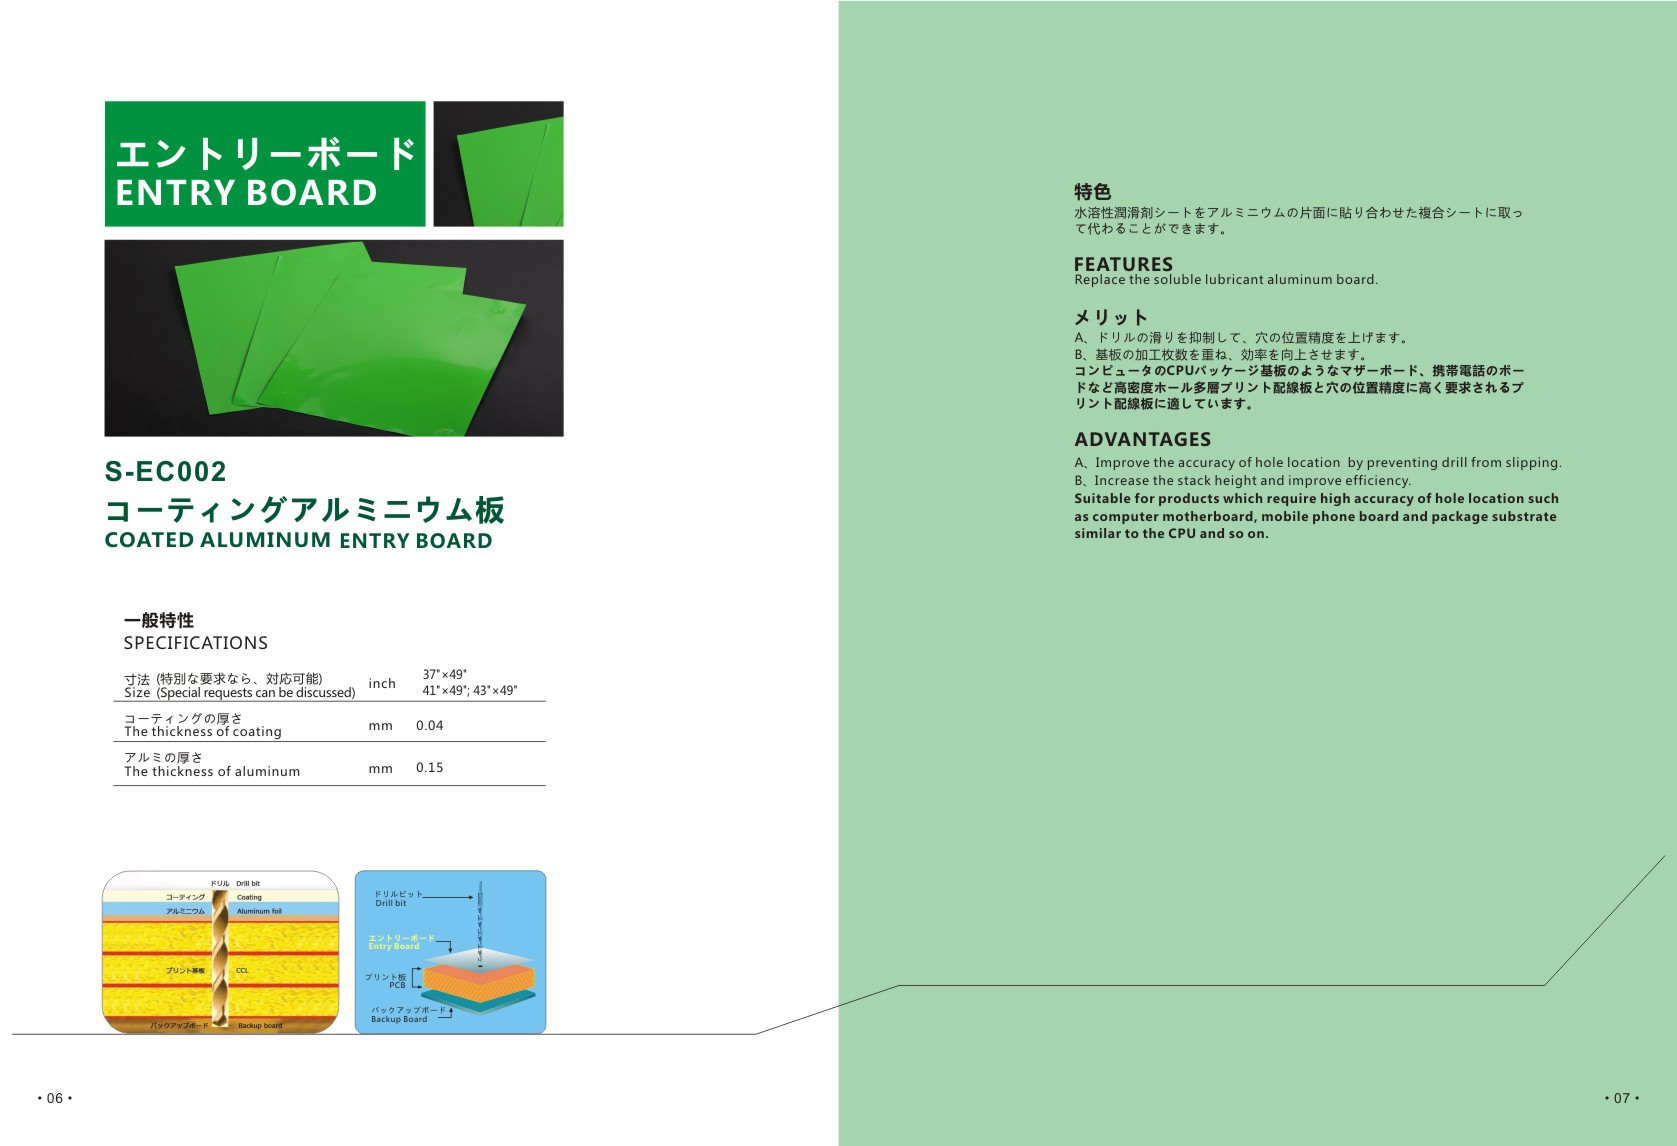 Coted Aluminum Entry Board